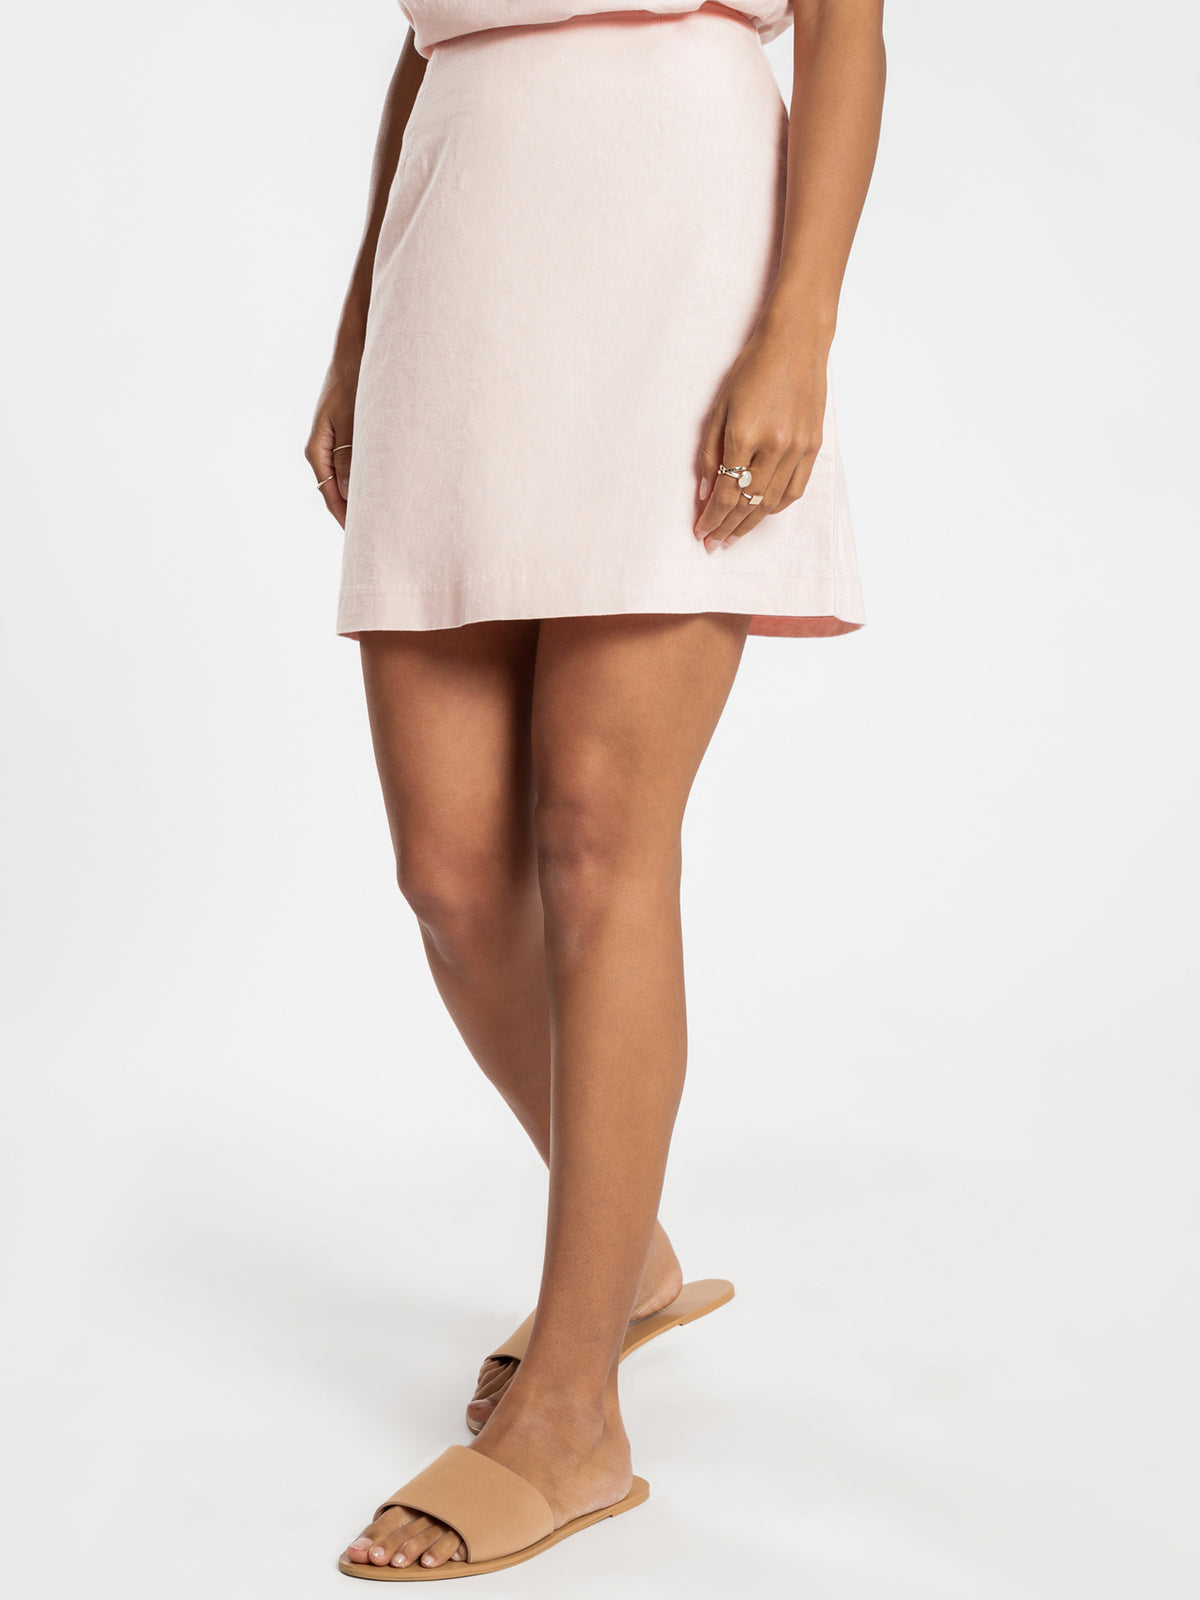 Darcy Linen Skirt in Pink Shell